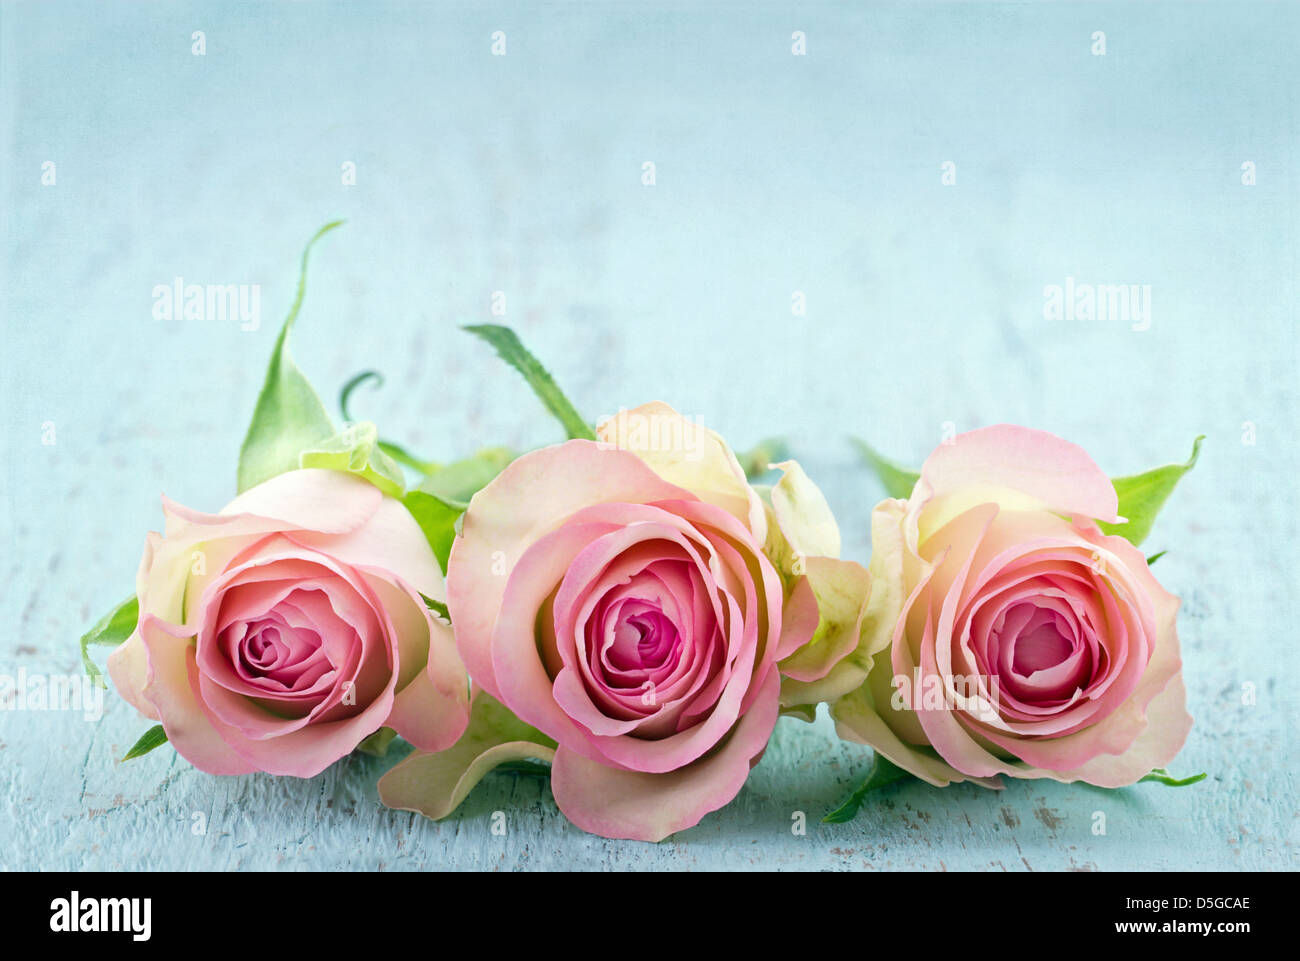 Three Pink Roses On Light Blue Wooden Shabby Chic Background With ...